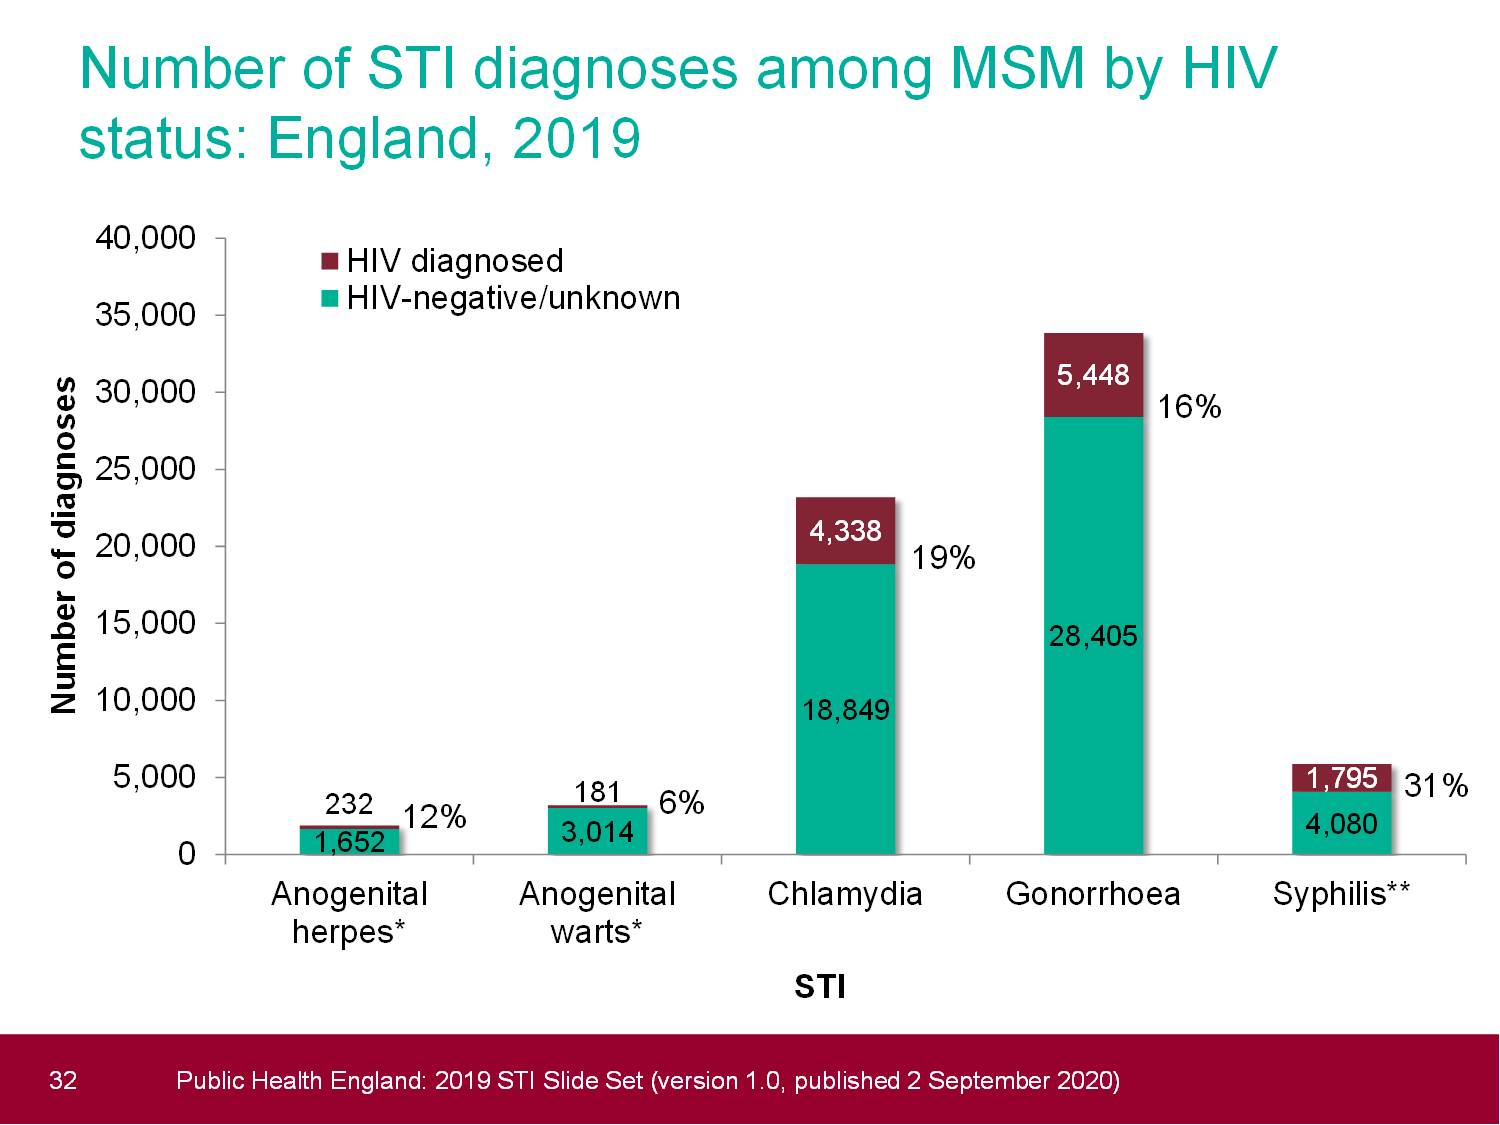 STI diagnoses among MSM by HIV status, 2010-2019